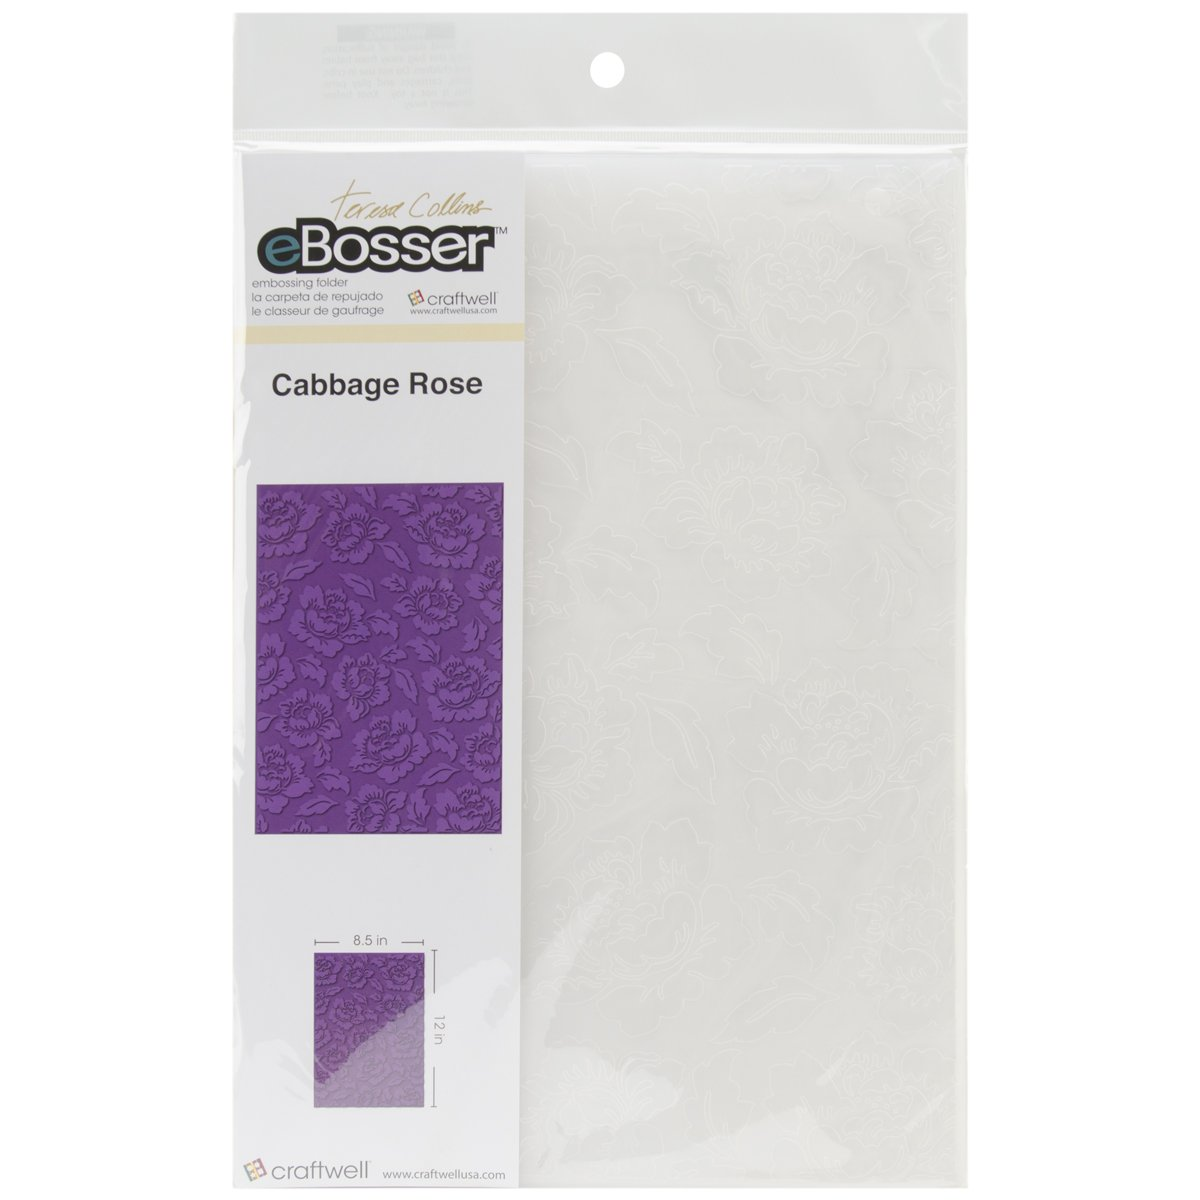 Craftwell USA Cabbage Rose Teresa Collins Embossing Folder, 8.5 by 12-Inch